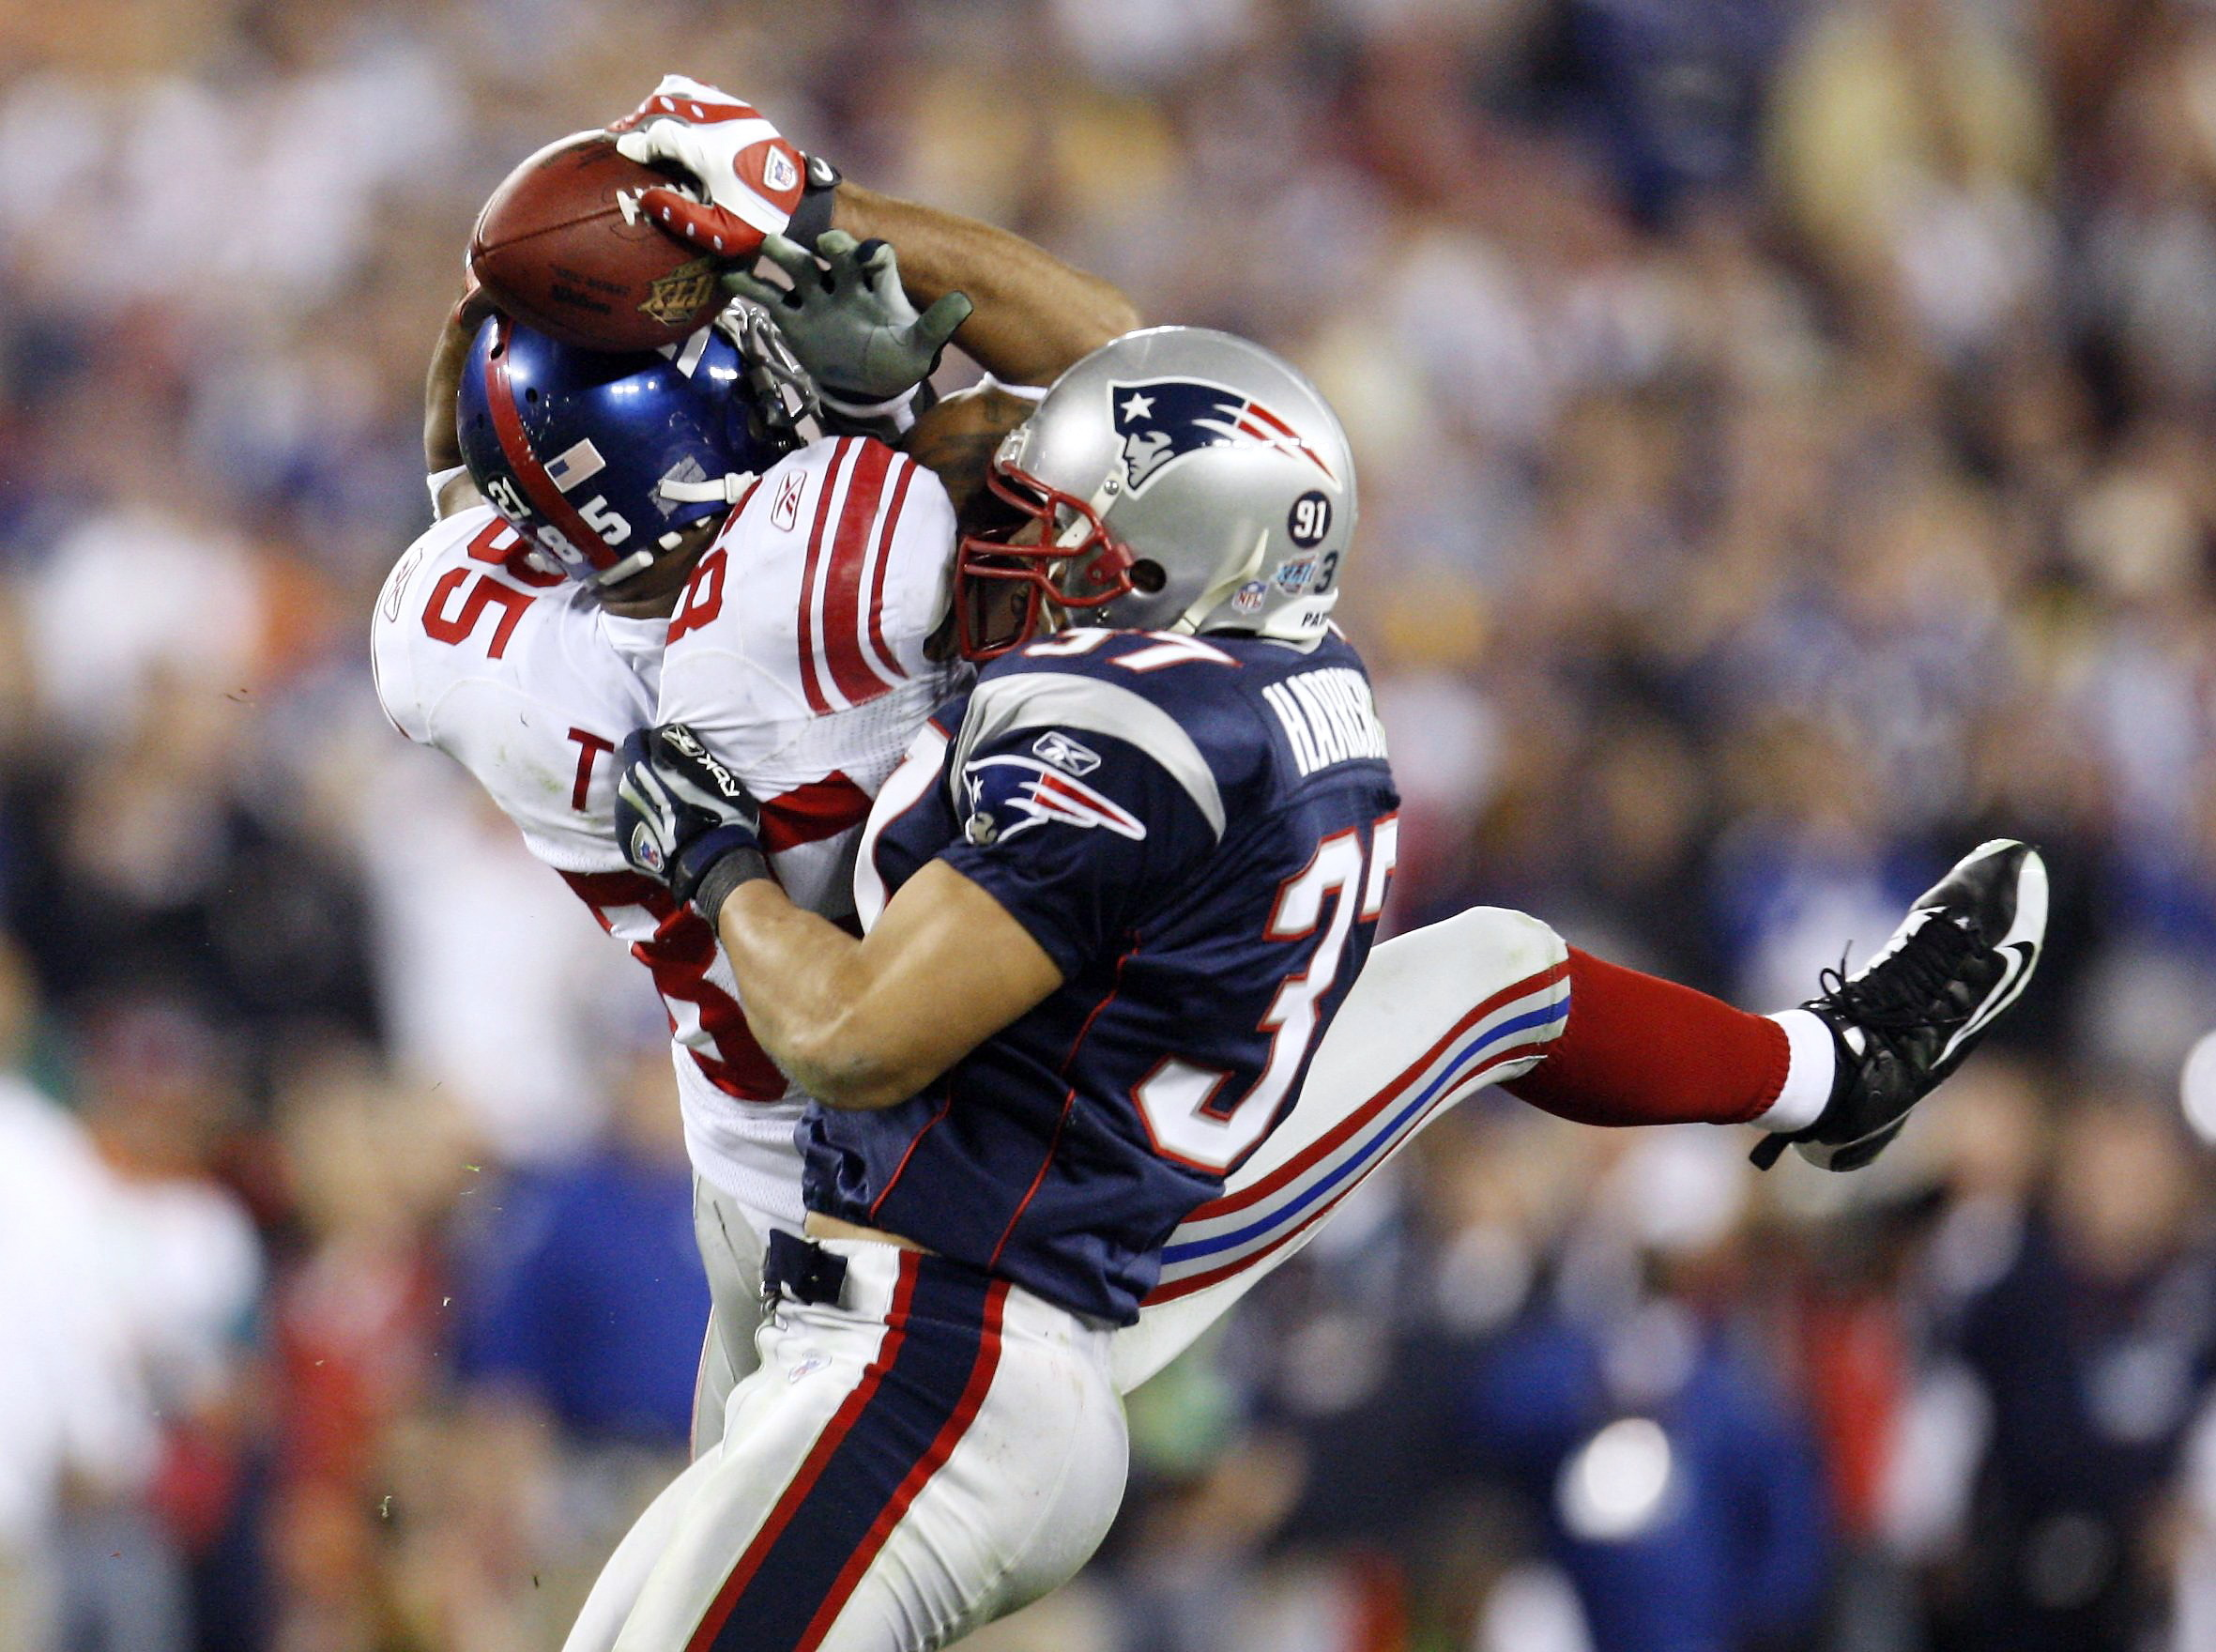 New York Giants receiver David Tyree (L) hauls in a Eli Manning (not pictured) pass last in the fourth quarter for a first down during the NFL's Super Bowl XLII. This victory is regarded as one of the greatest upsets of all time as the Patriots were chasing a perfect season and were expected to win the final comfortably.  Image supplied by Action Images/Shaun Best.